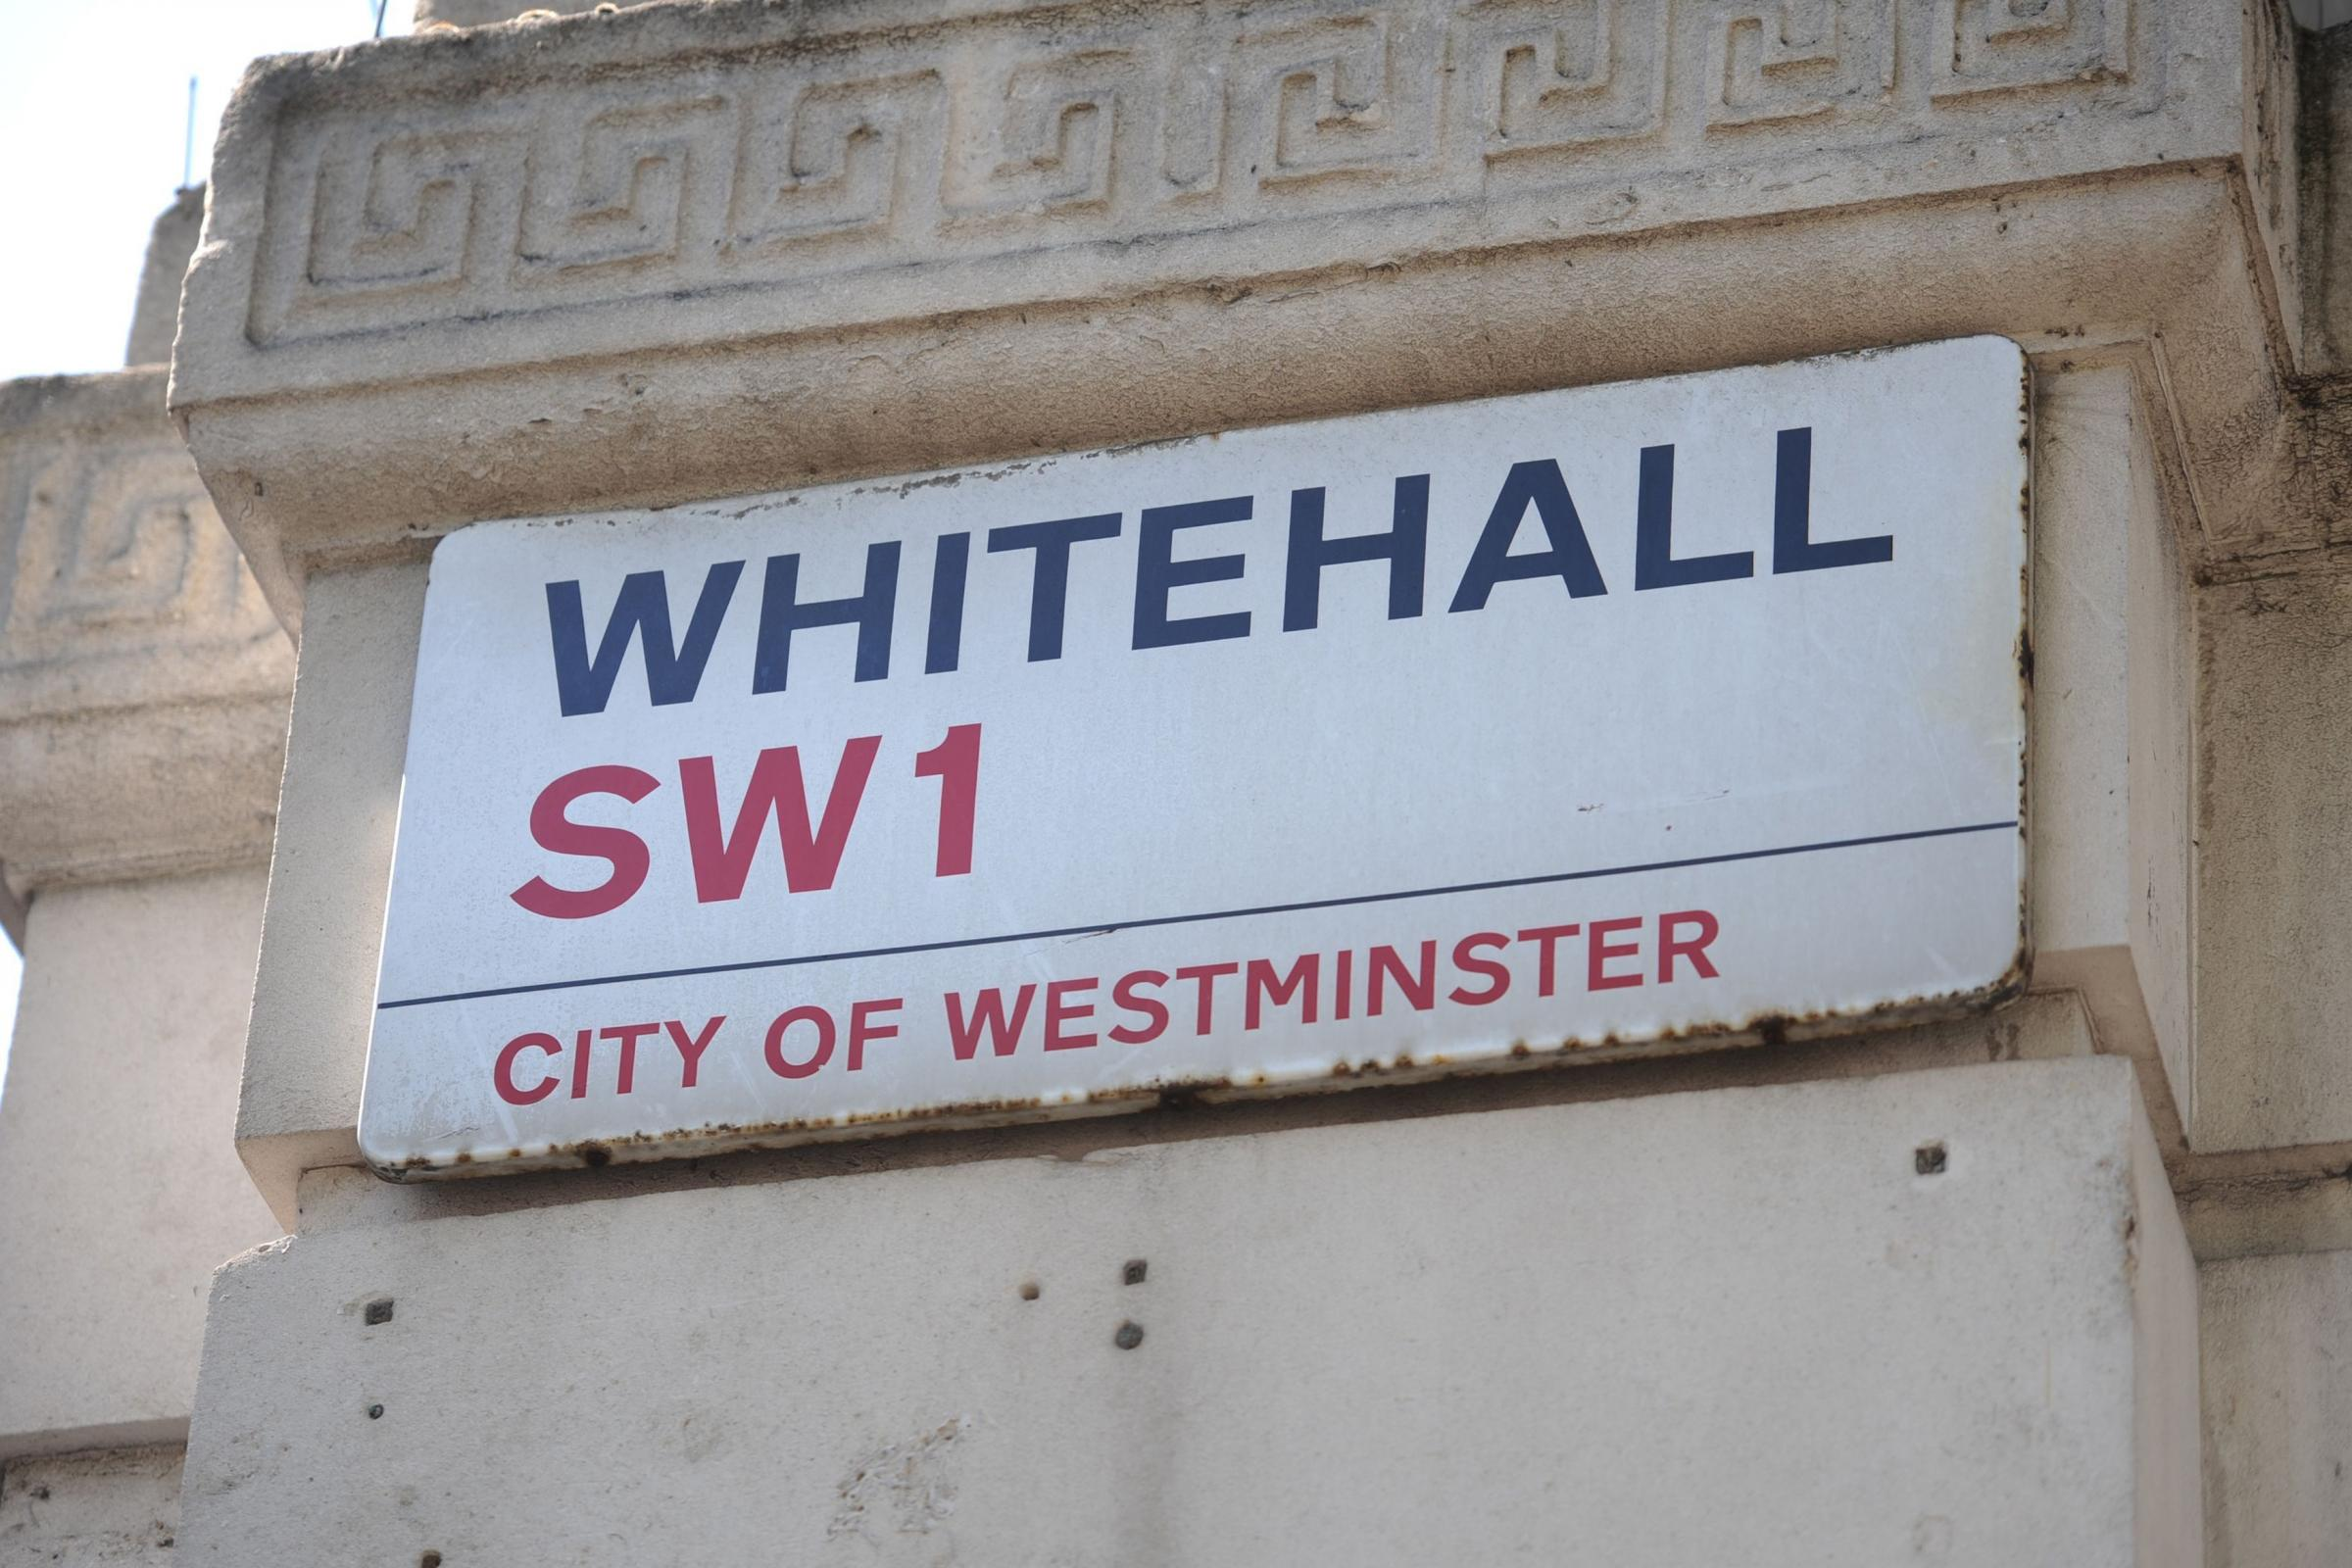 Labour To Drop Irrelevant Academic Requirements For Civil Service Jobs Stroud News And Journal